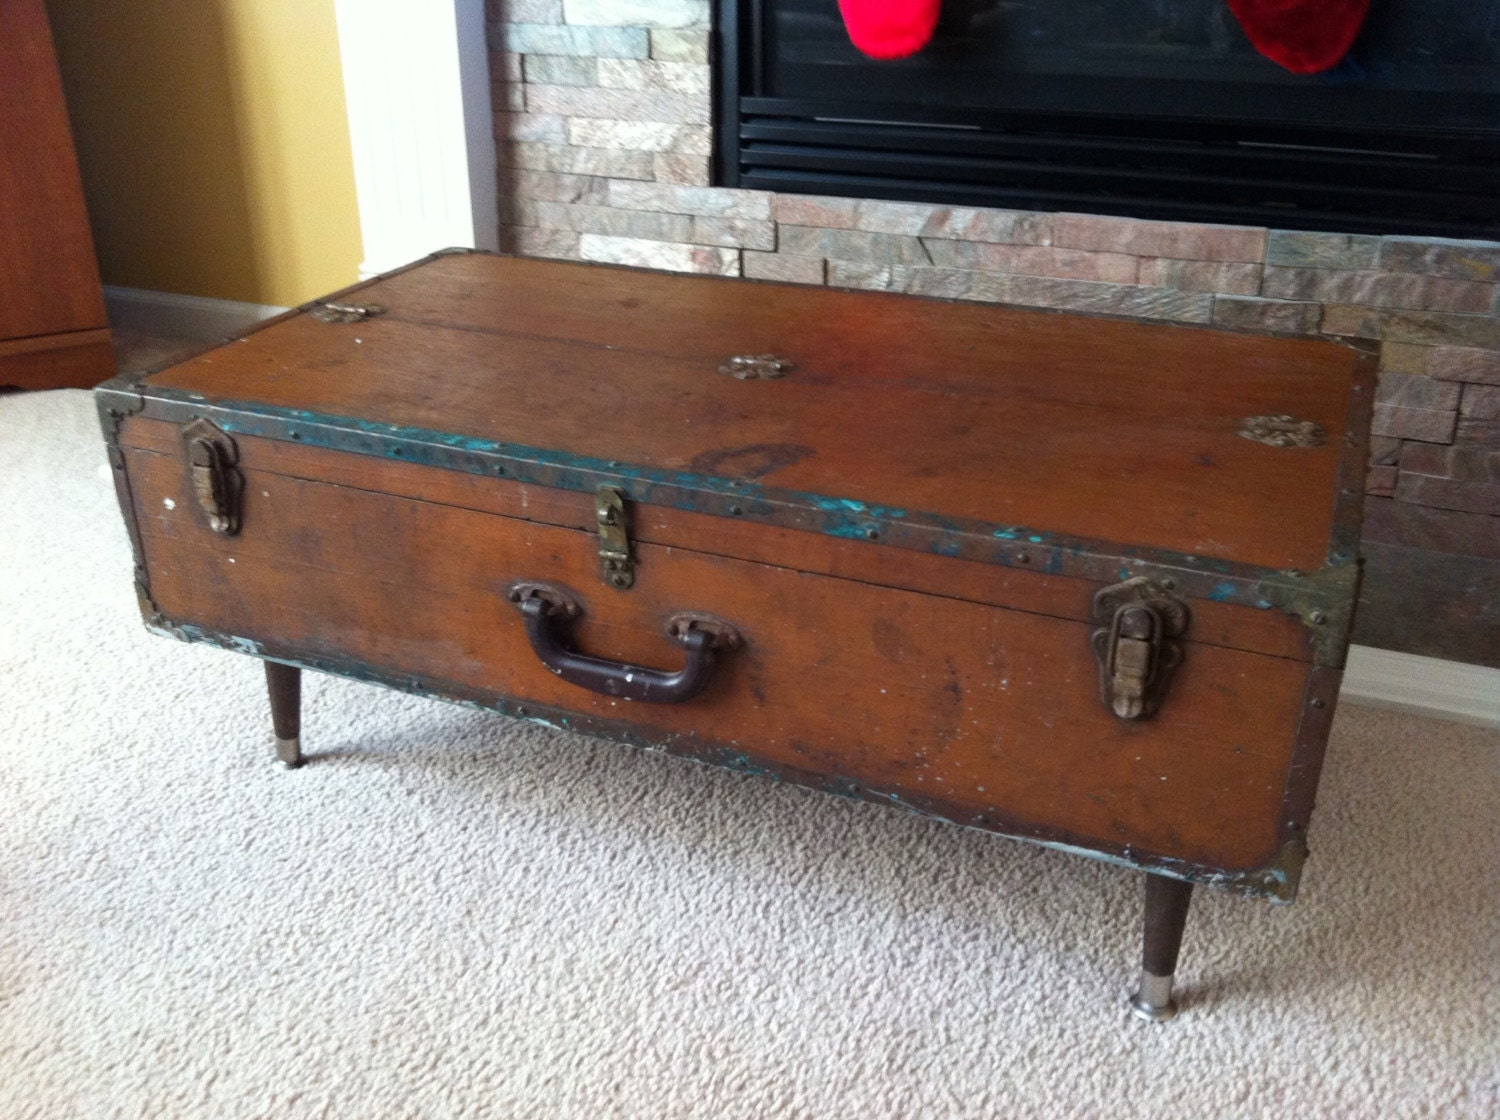 Vintage Tool Chest Coffee Table Repurposed